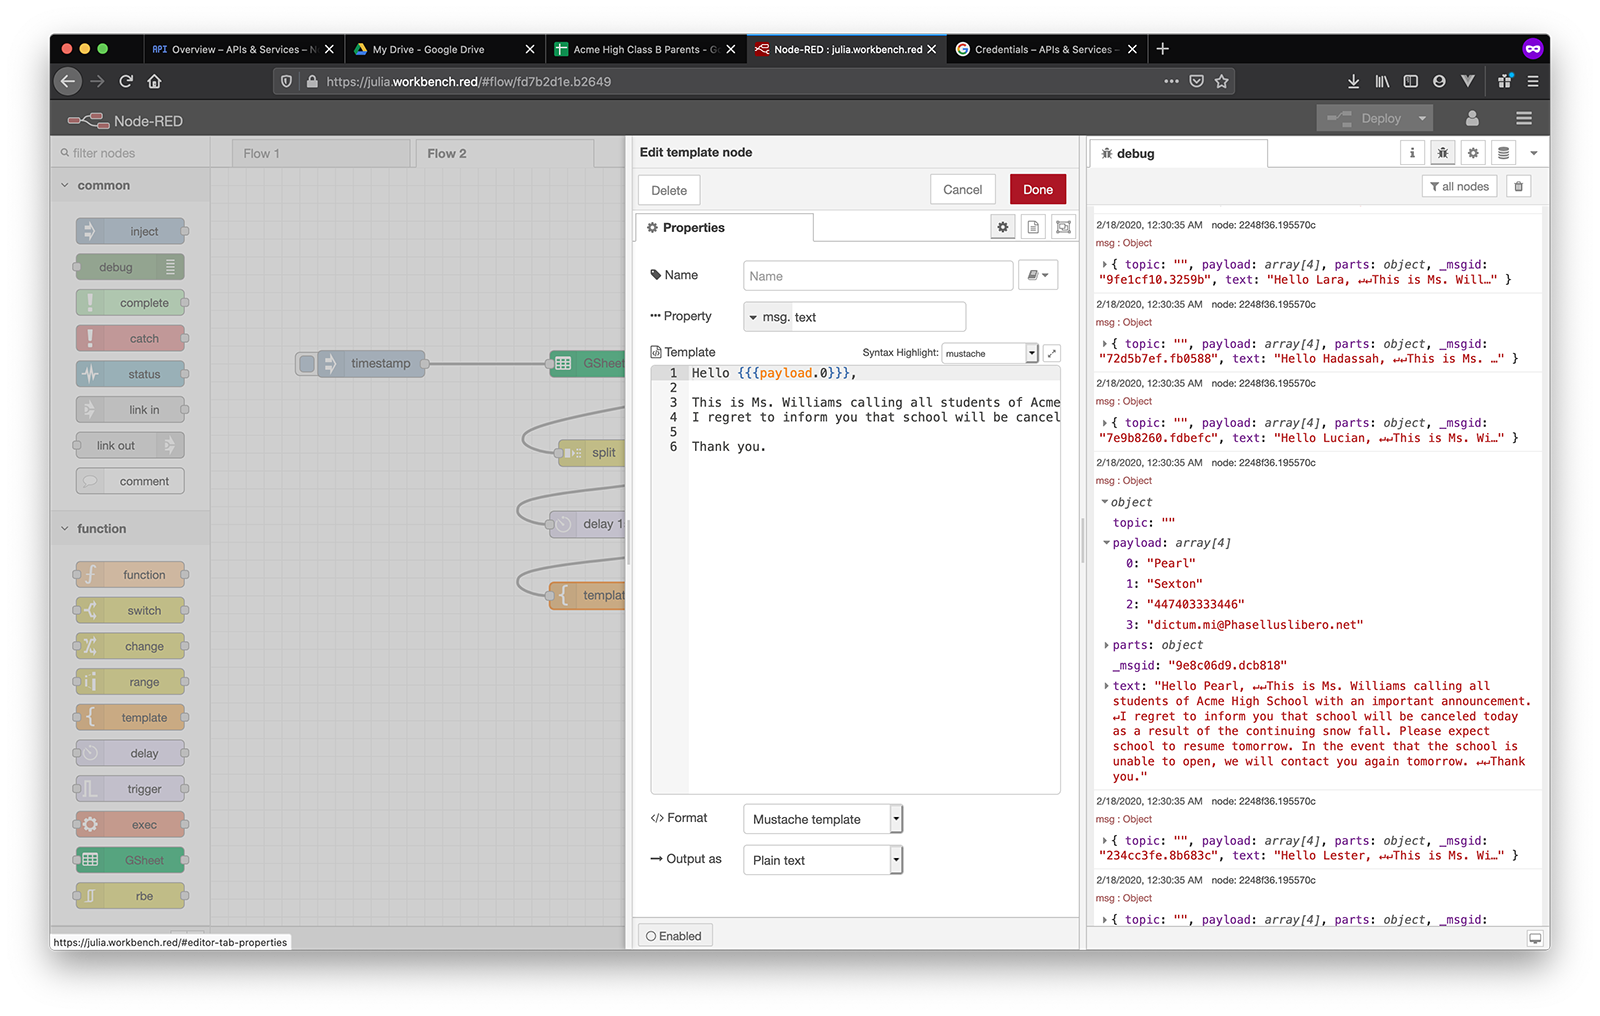 google sheets templated sms in debug